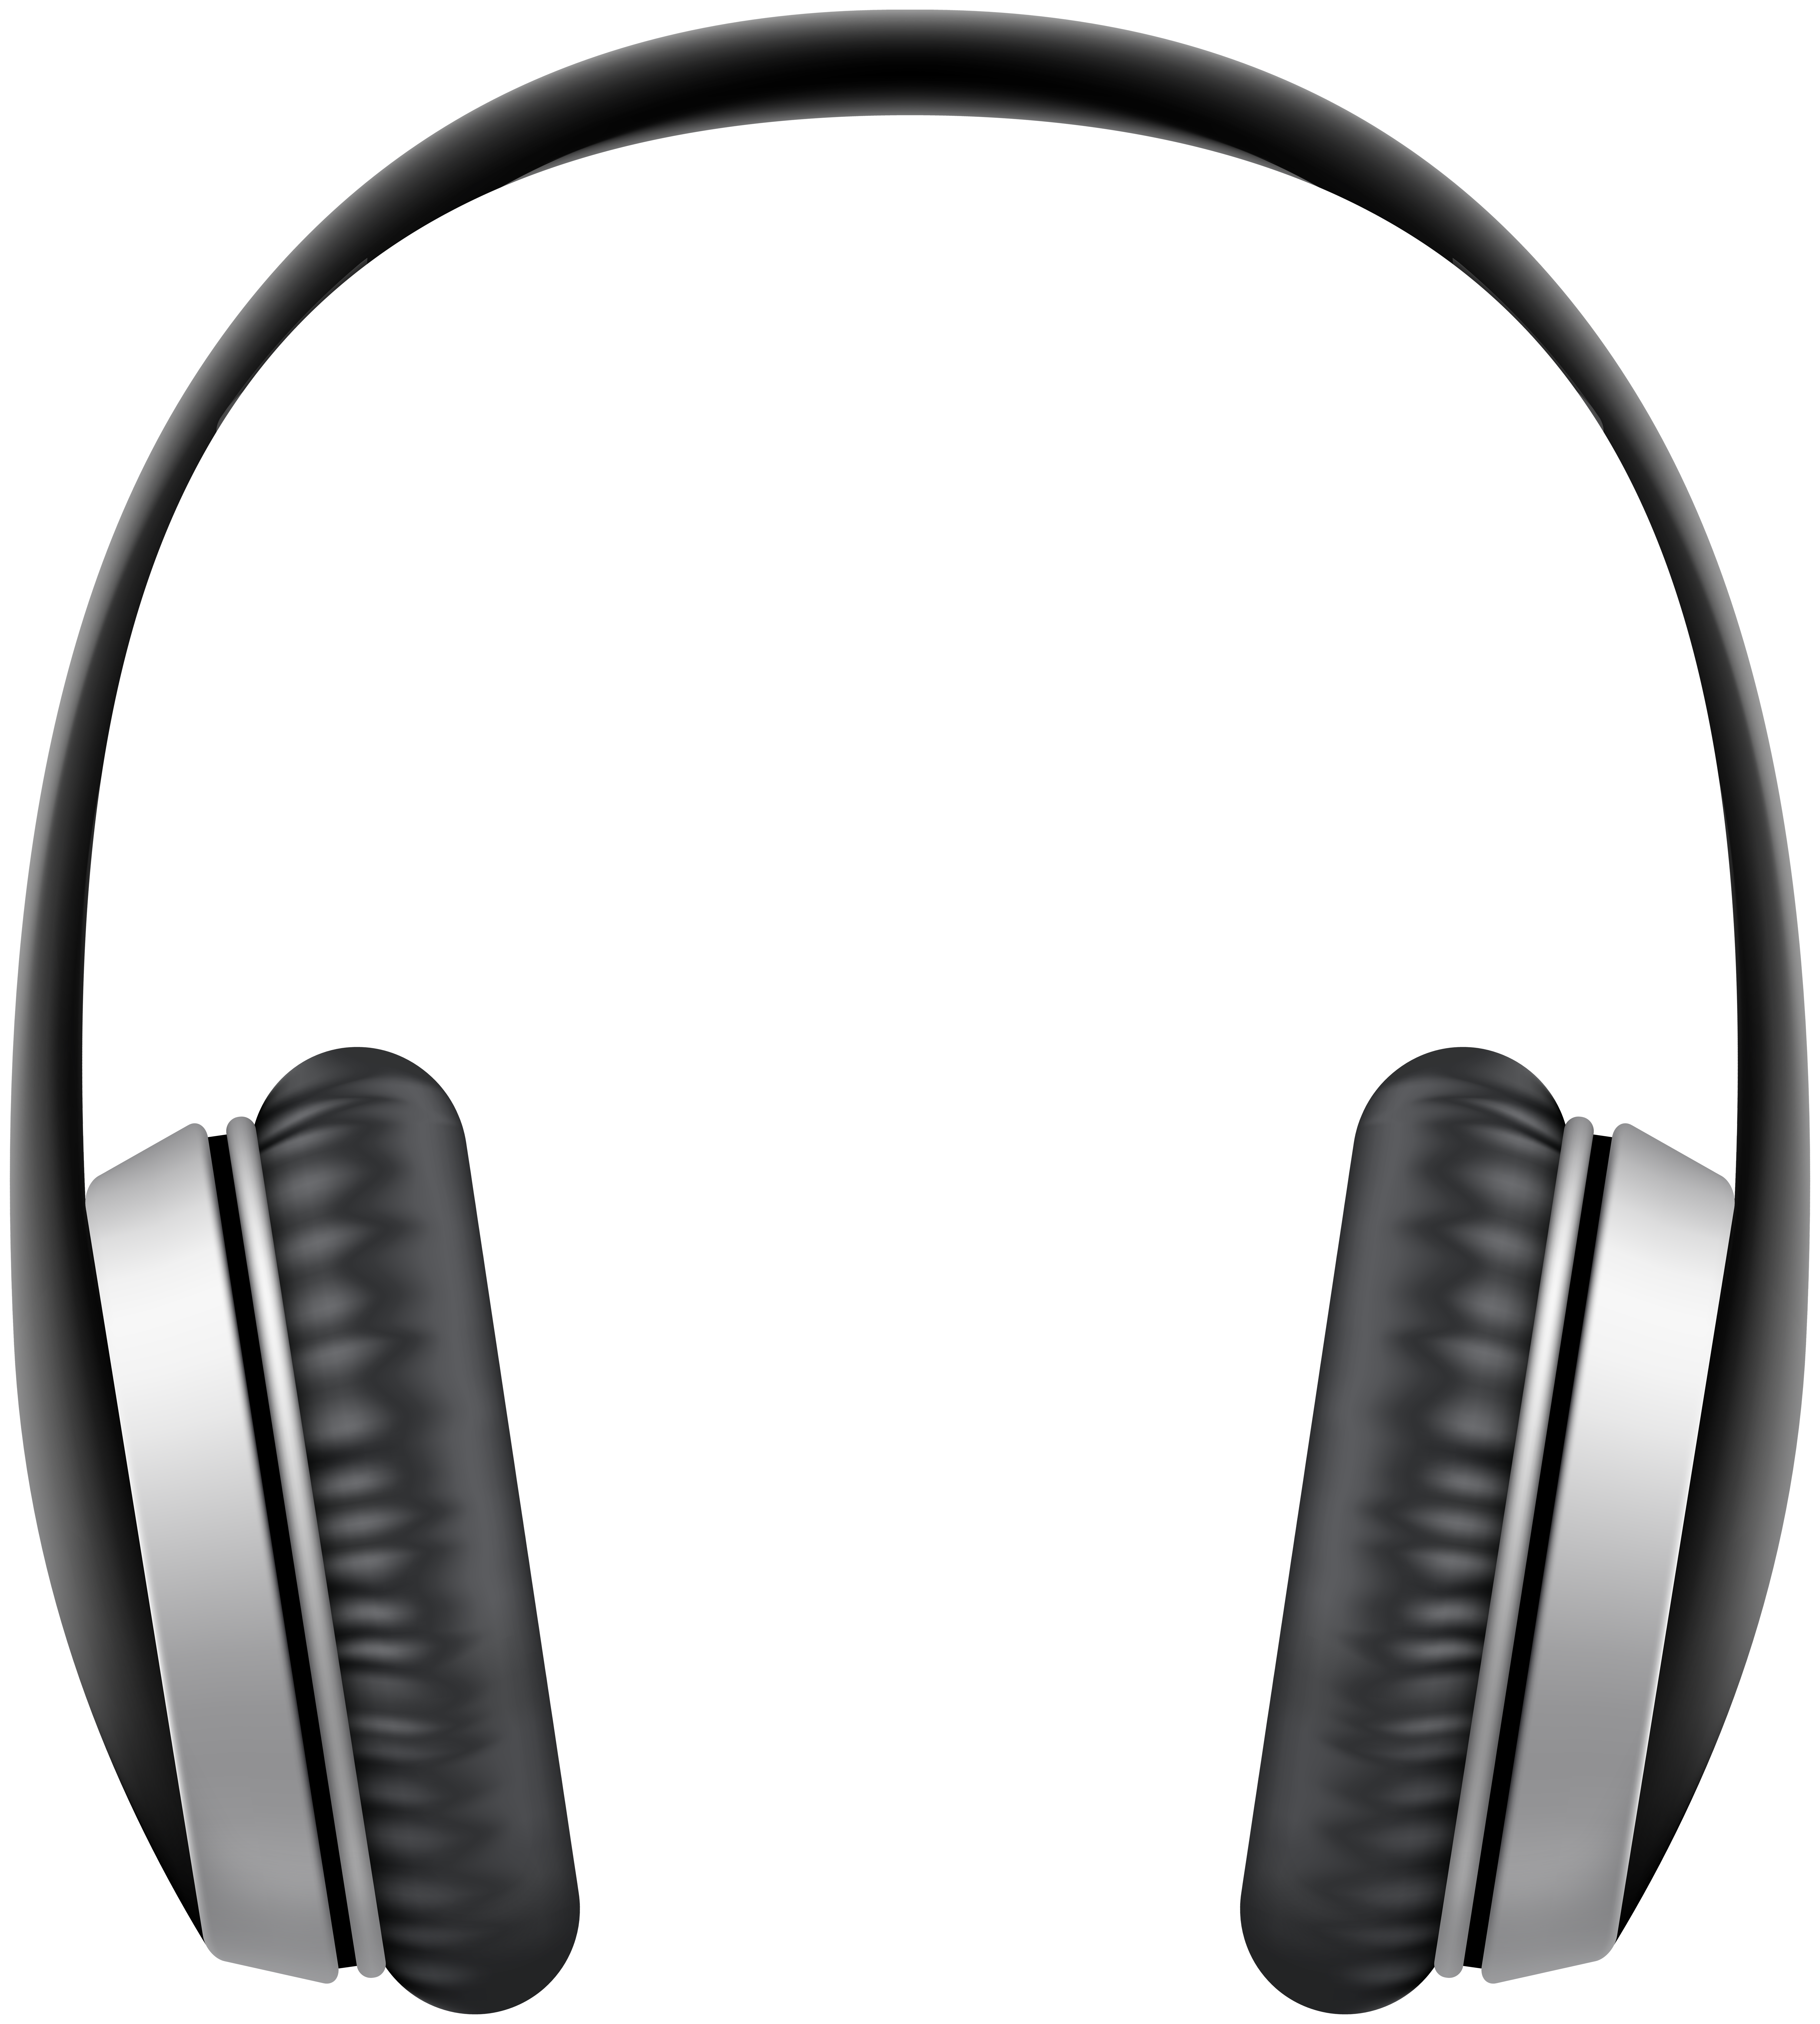 Headset PNG Clip Art Image.